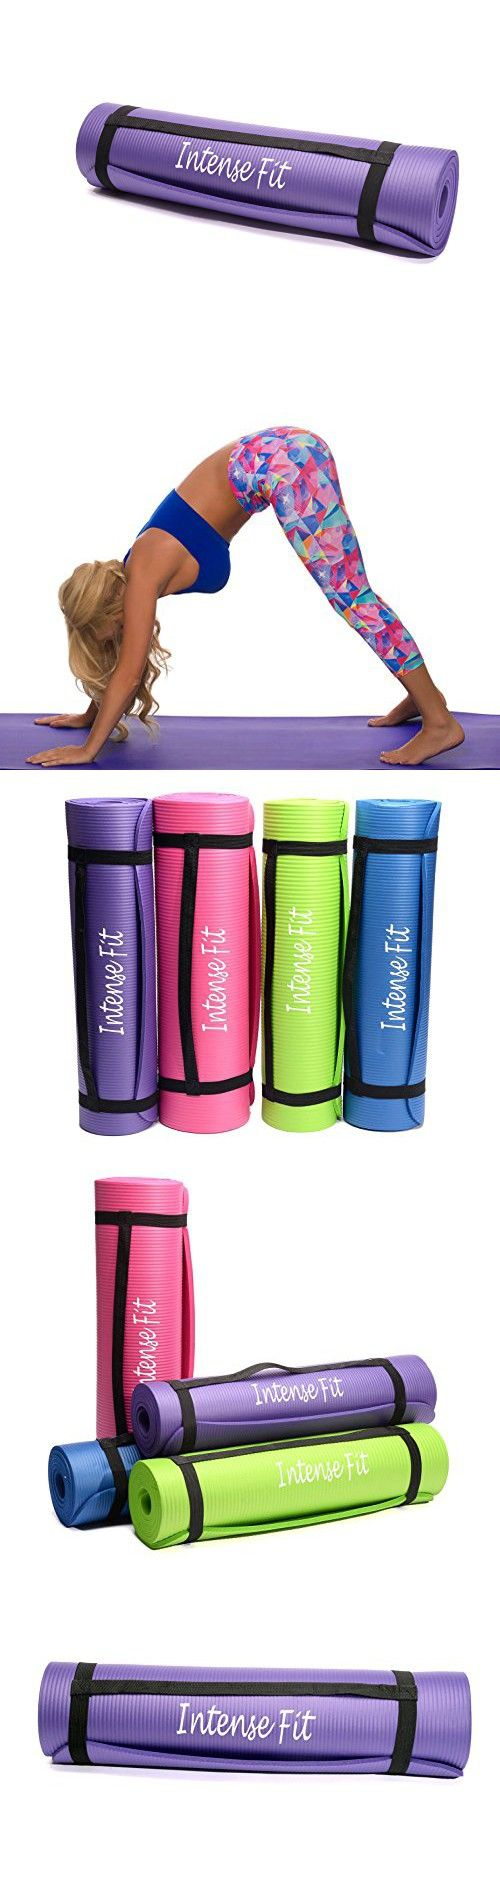 Intense Fit Multi-Purpose 3/8-Inch Thick 71-Inch Long 24-Inch Wide Anti-Tear Non-Slip NBR Comfort Foam Yoga Pilates Mat with Carrying Strap - 4 Colors (Purple)